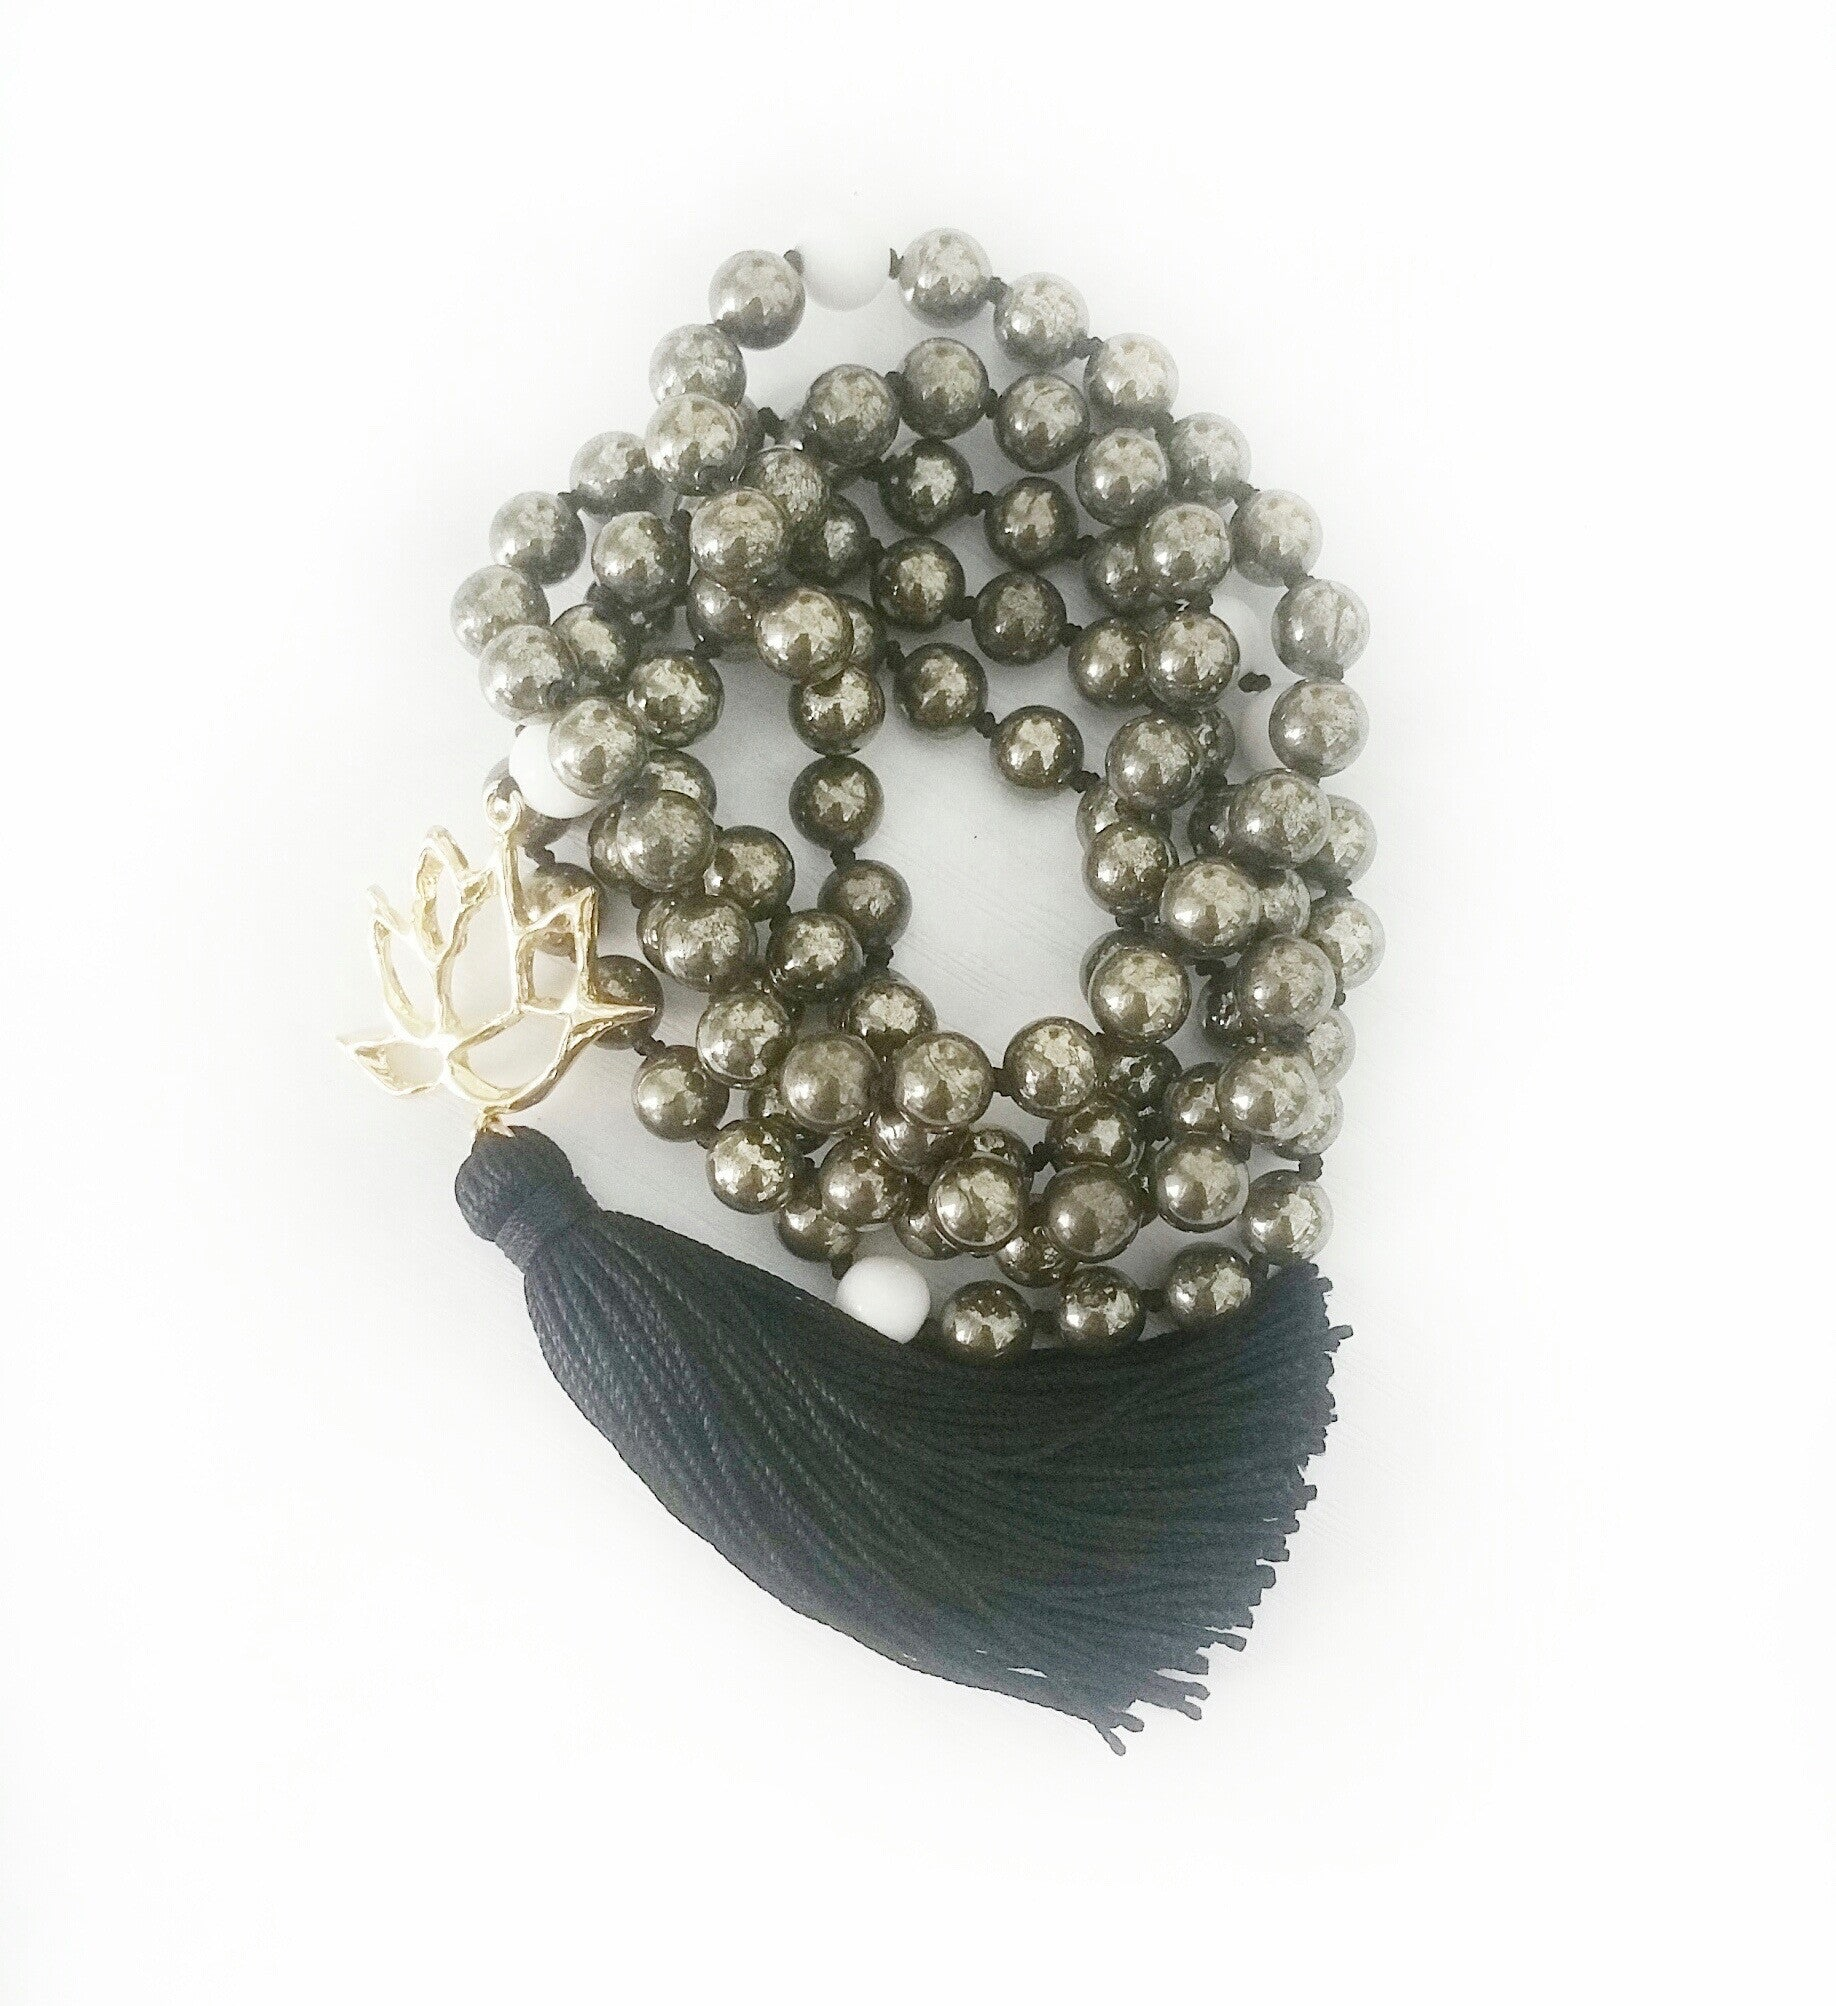 Pyrite & White Shell Abundance Lotus Goddess Mala a KinoYoga Capsule for Open Heart Warrior